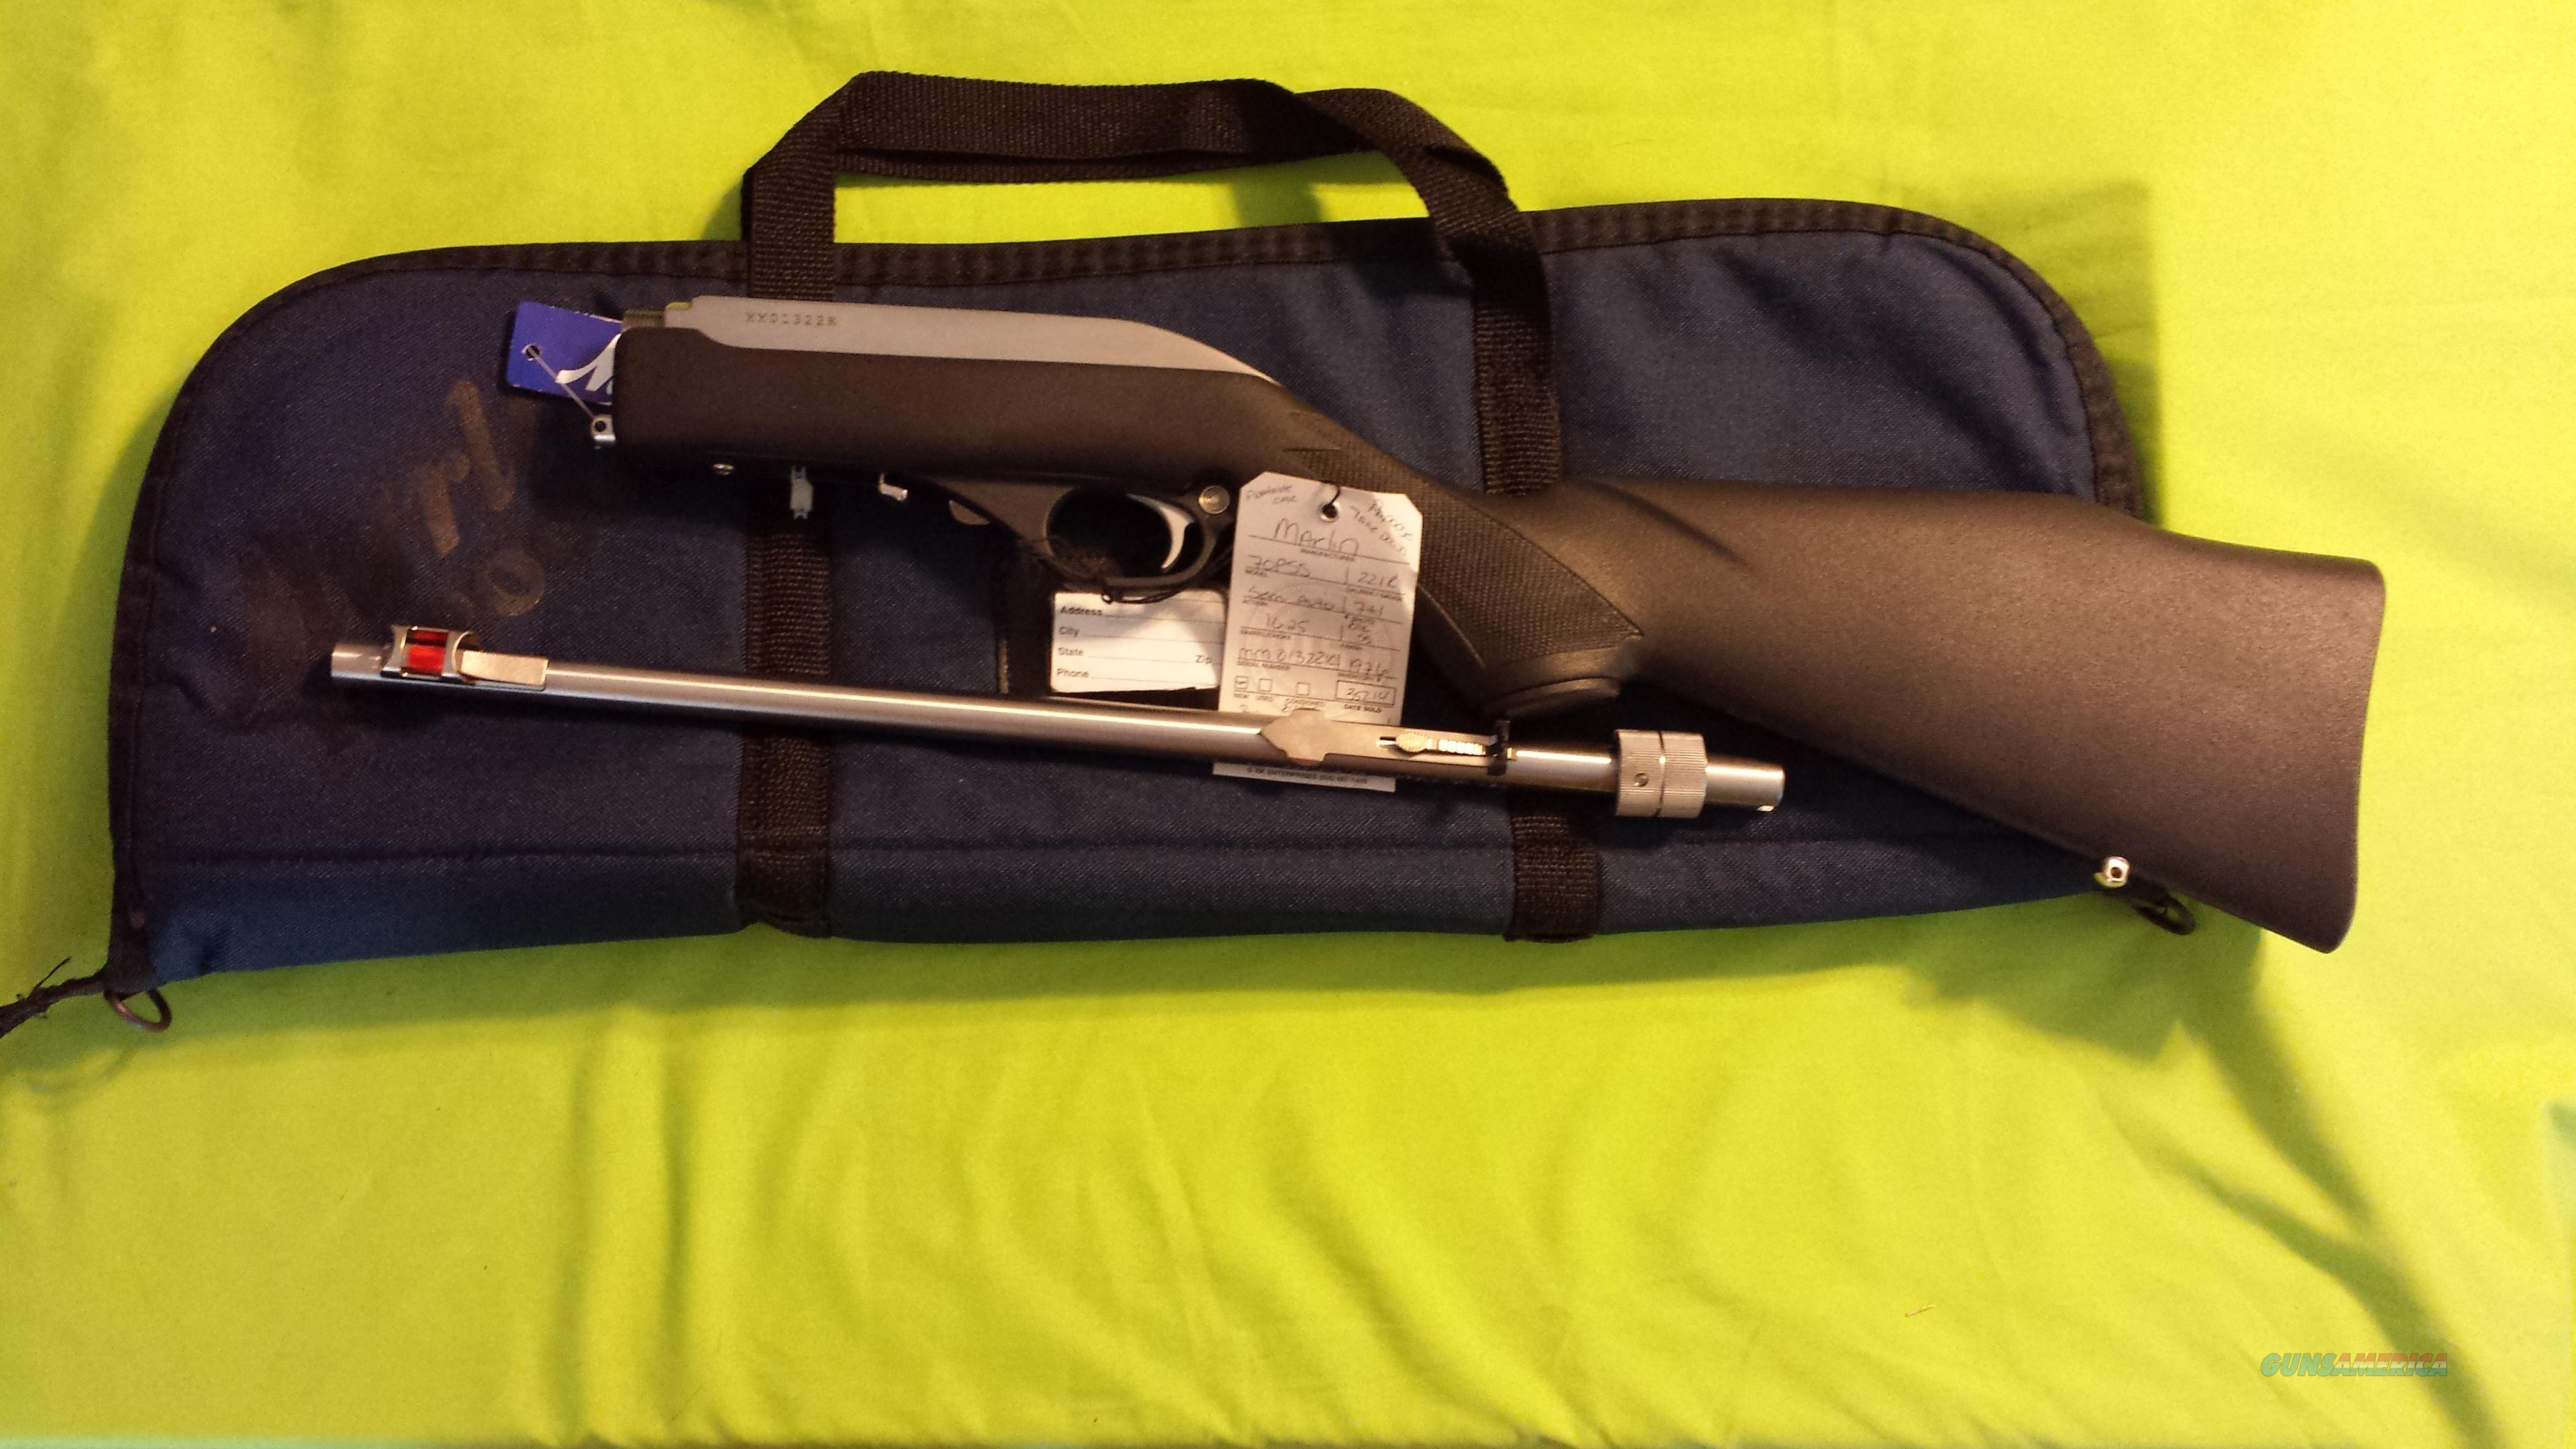 Marlin 70 70pss Papoose 22lr 22 Lr Take Down 70 For Sale